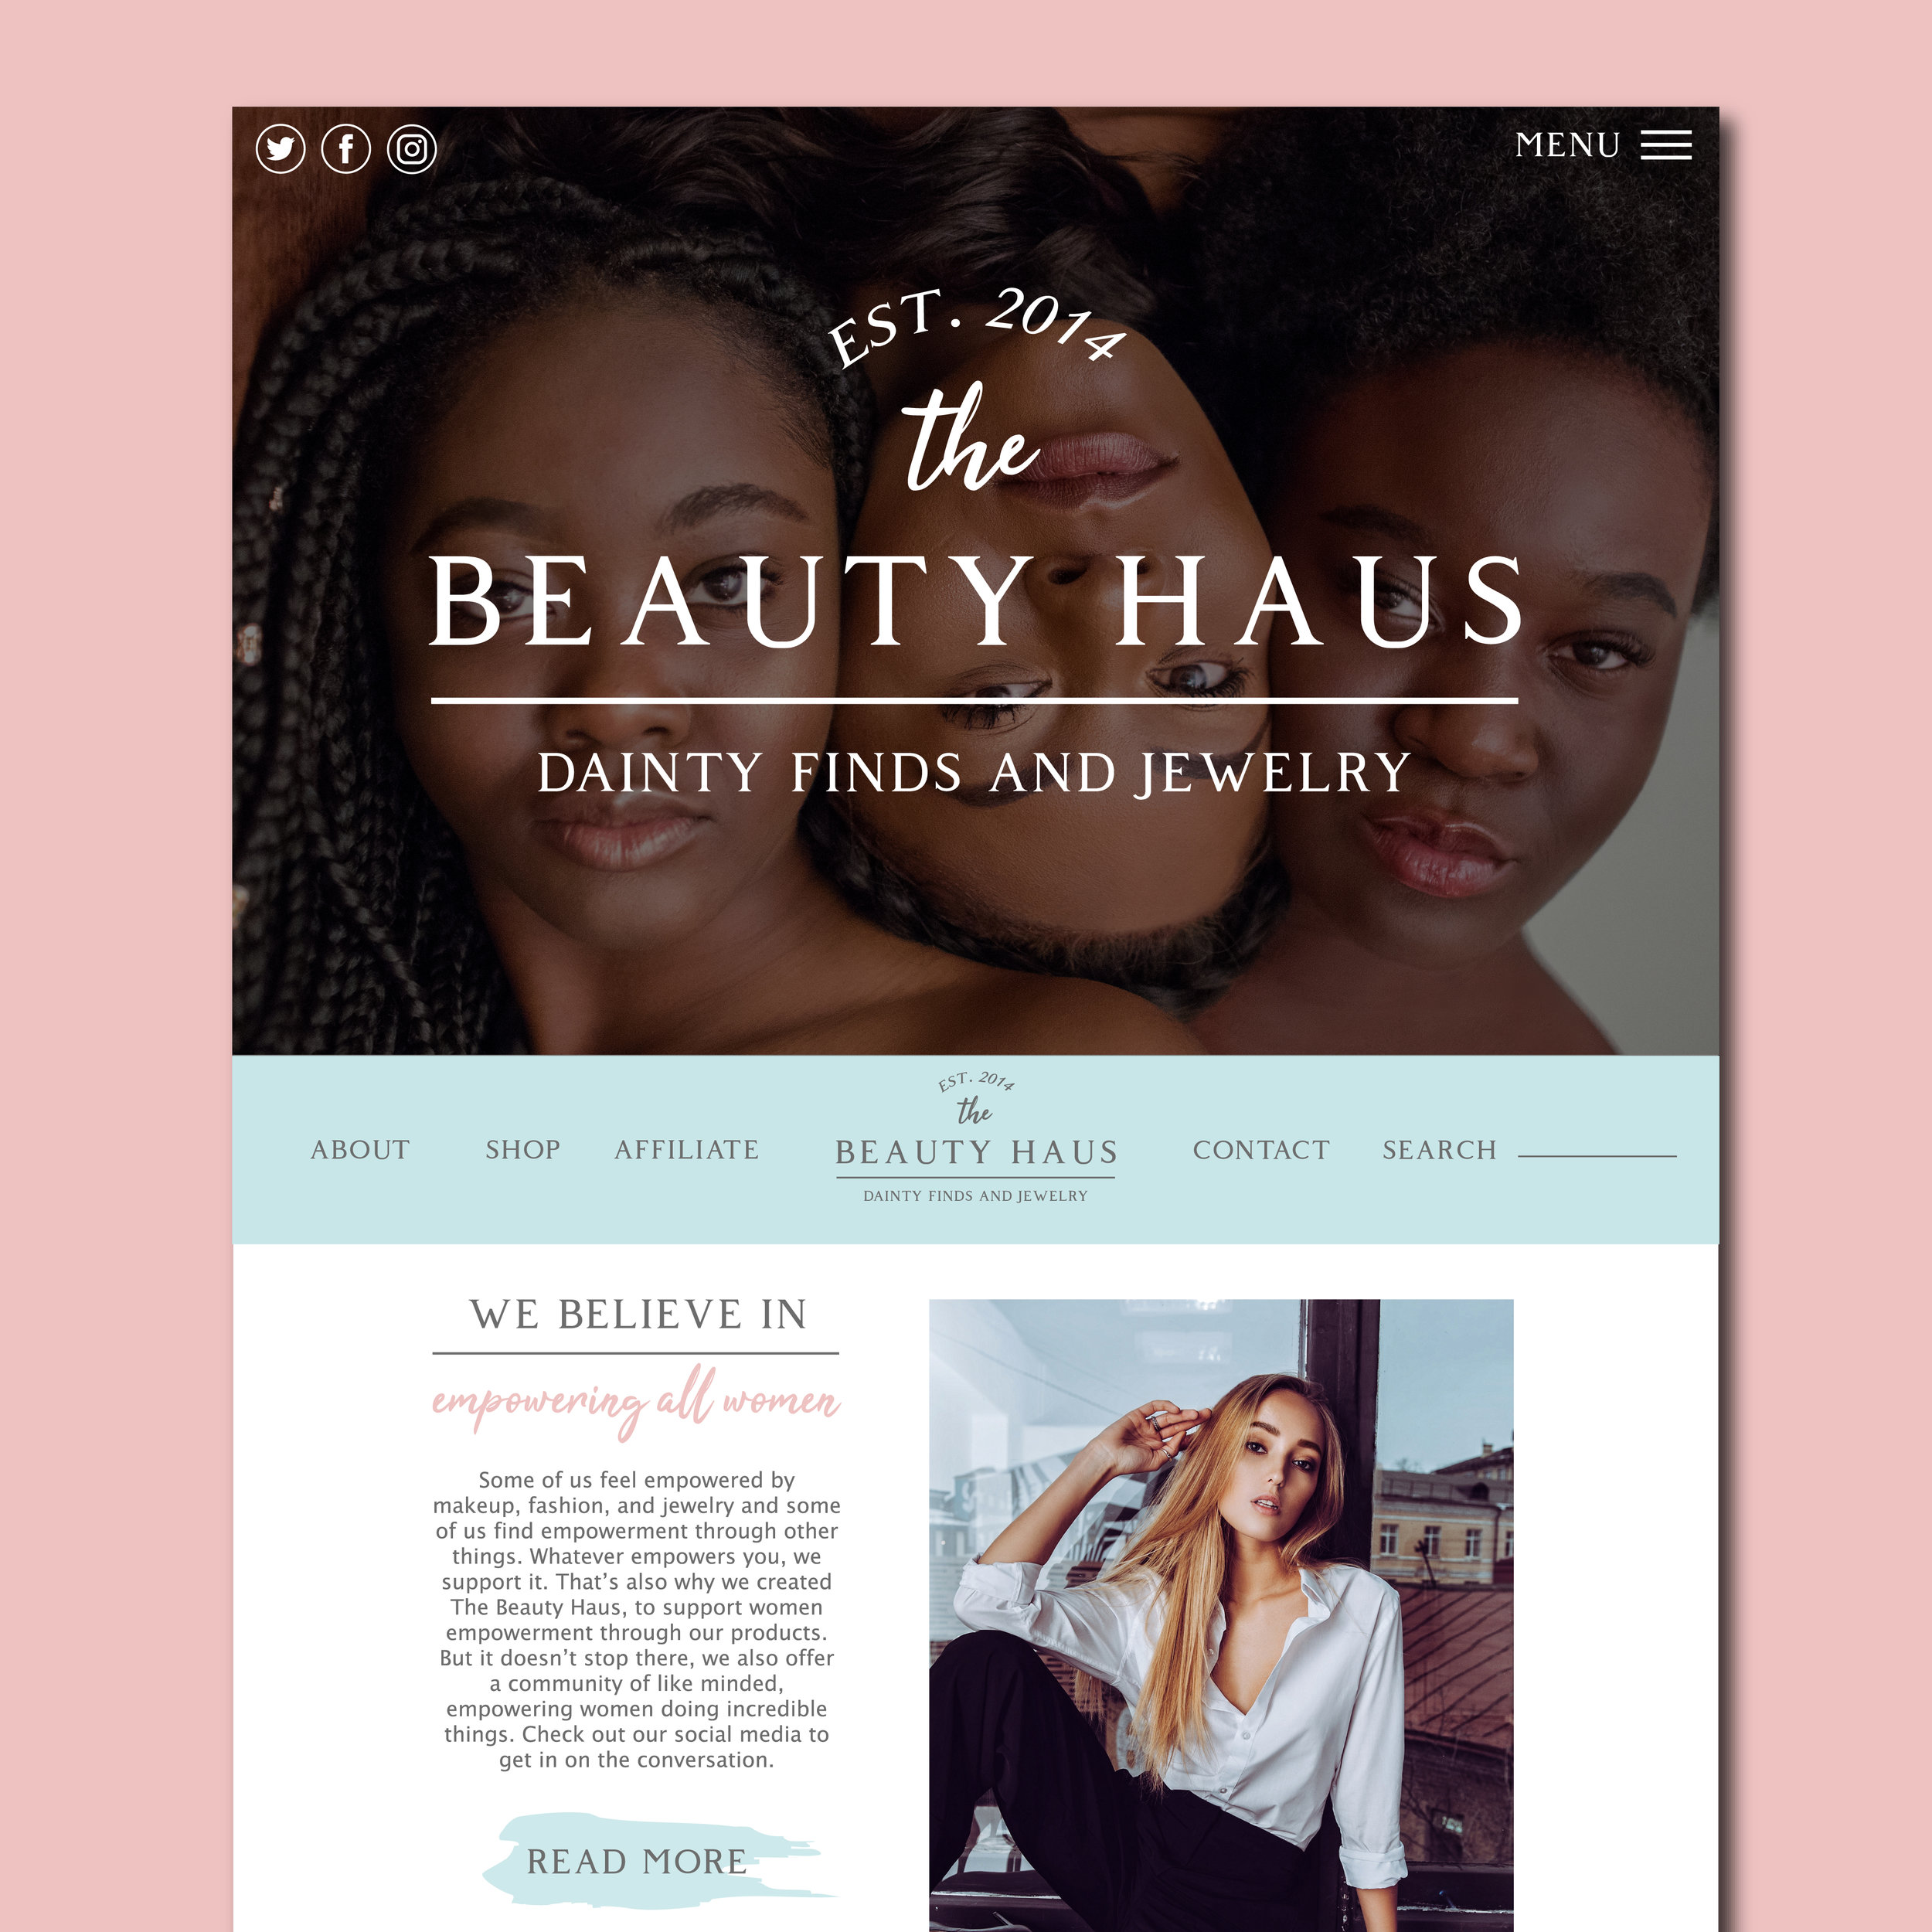 The BEAUTY HAUS Website Design by Kenzi Green Design #webdesign #websitedesigner #homepage